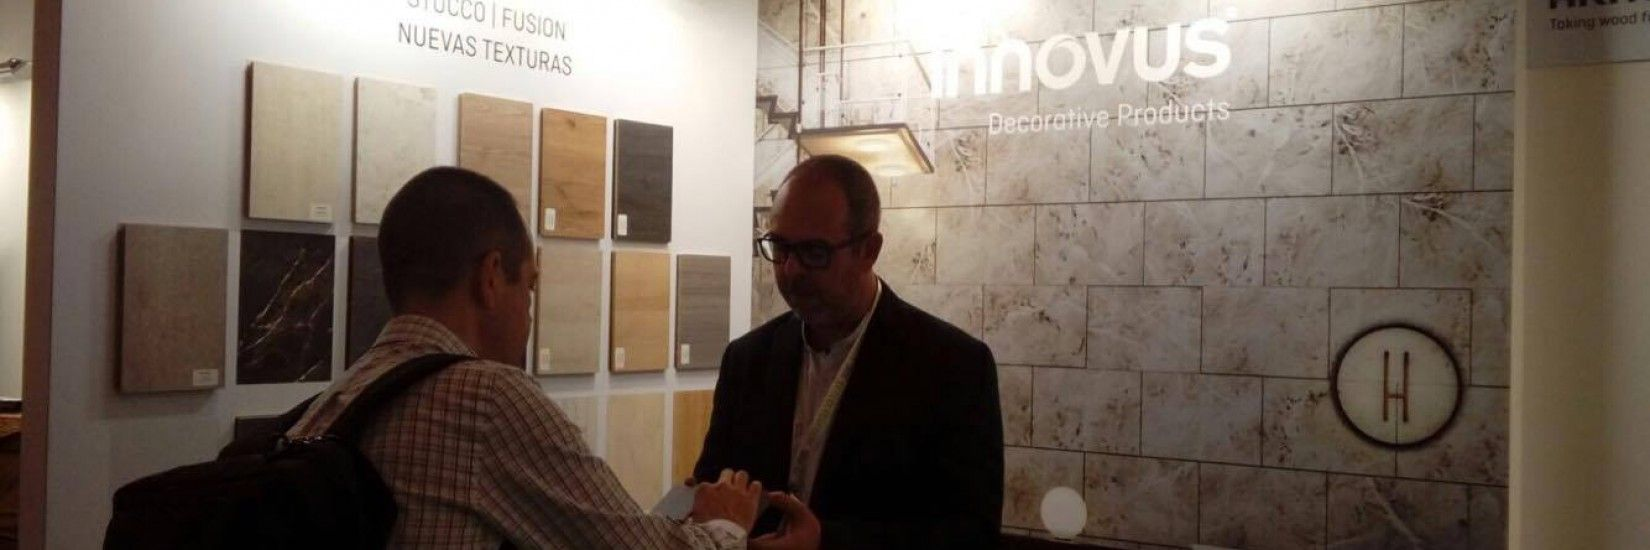 Sonae Arauco presents the new Innovus finishes in the biggest fair (hotel design) of south Europe